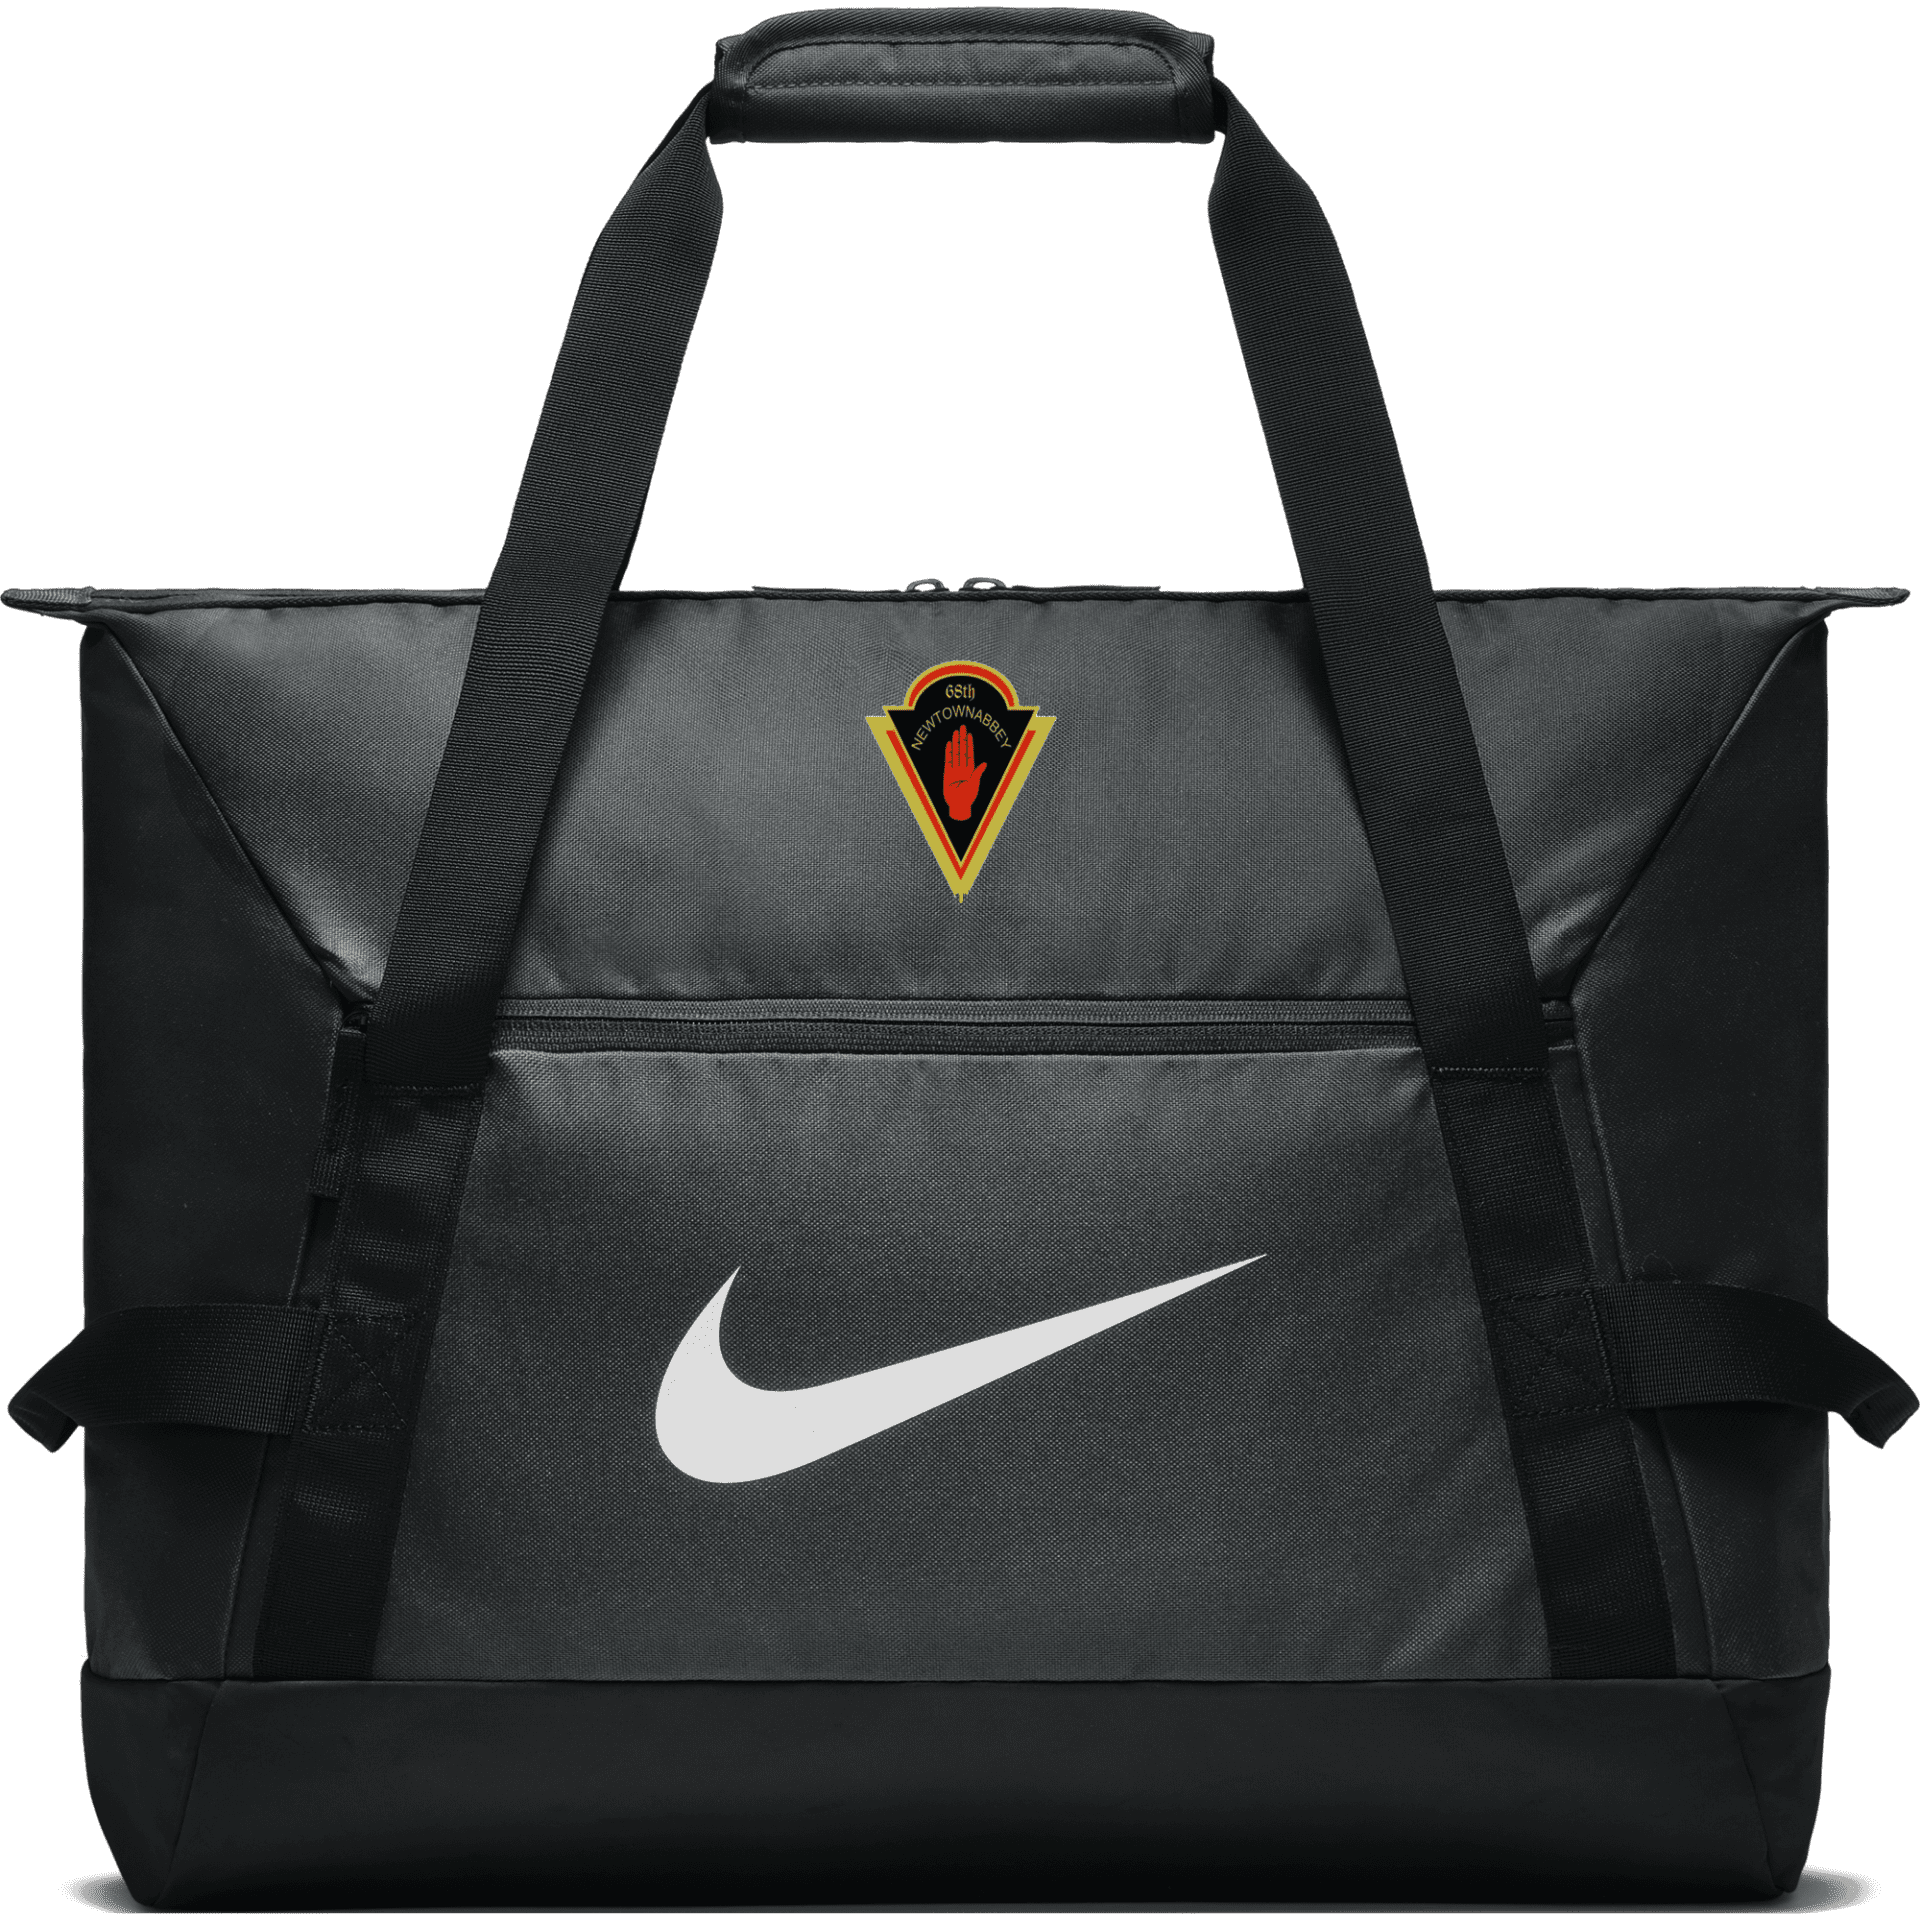 68th newtownabbey duffel bag 33974 p